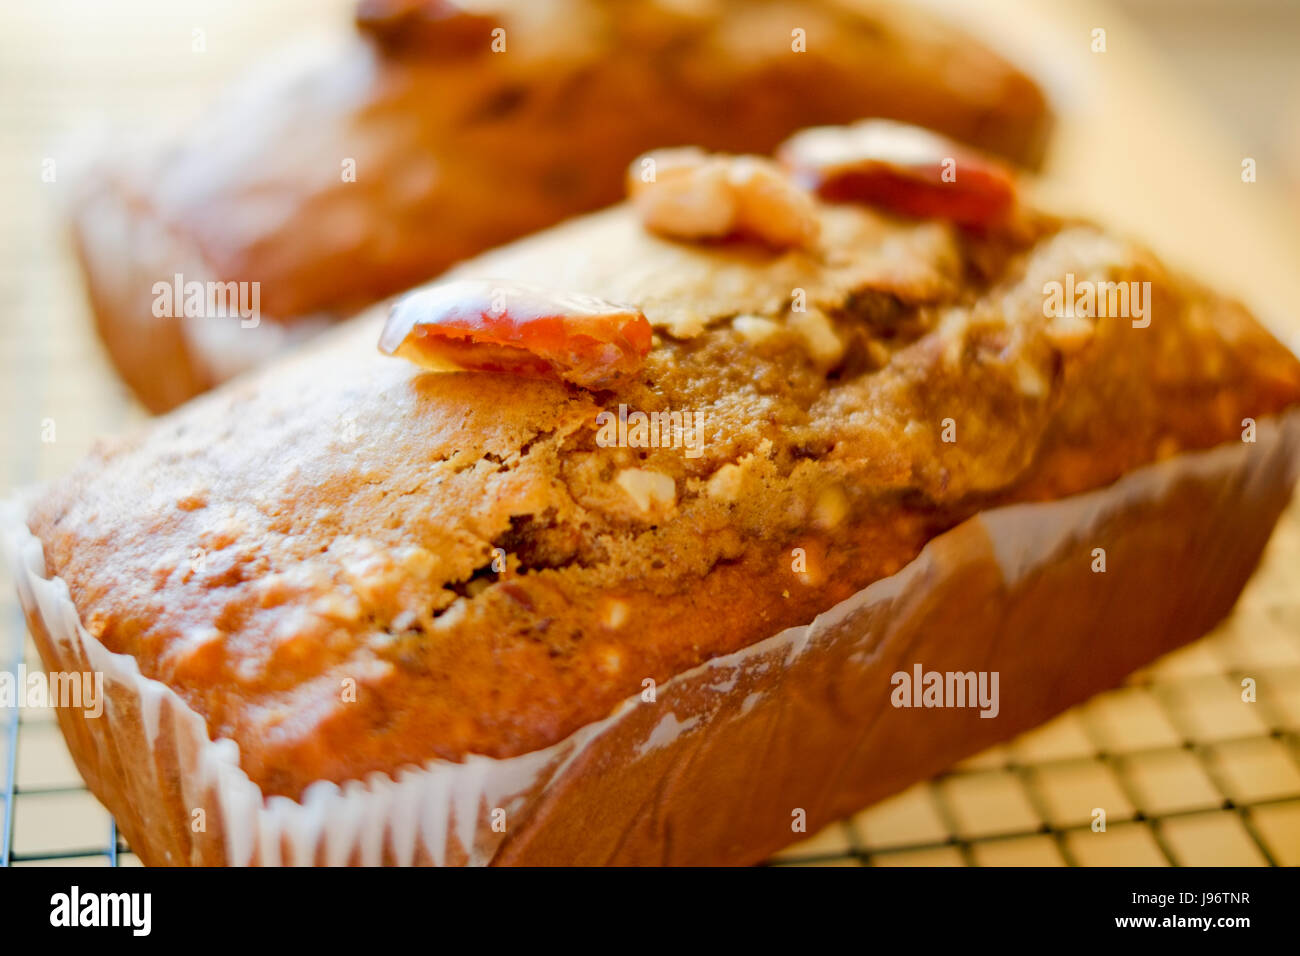 Home cooked food. Two date and walnut cakes on a cooling rack. - Stock Image